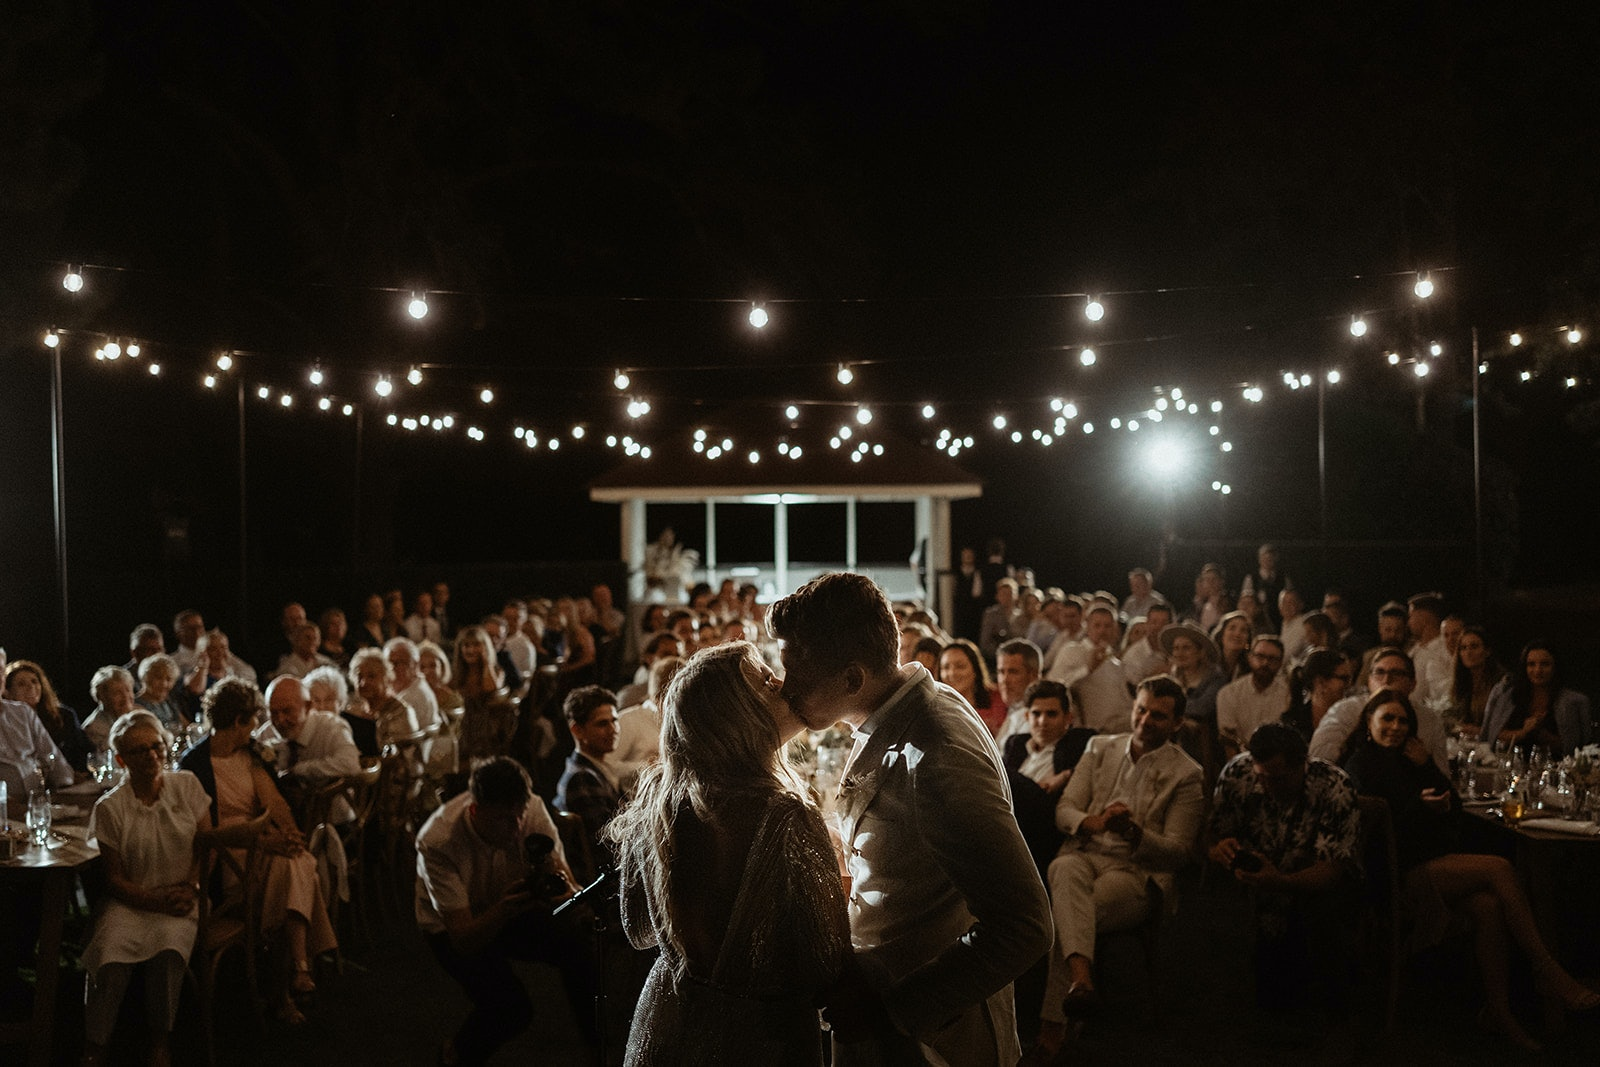 bride and groom kissing at night time at their outdoor reception with festoon lights overhead